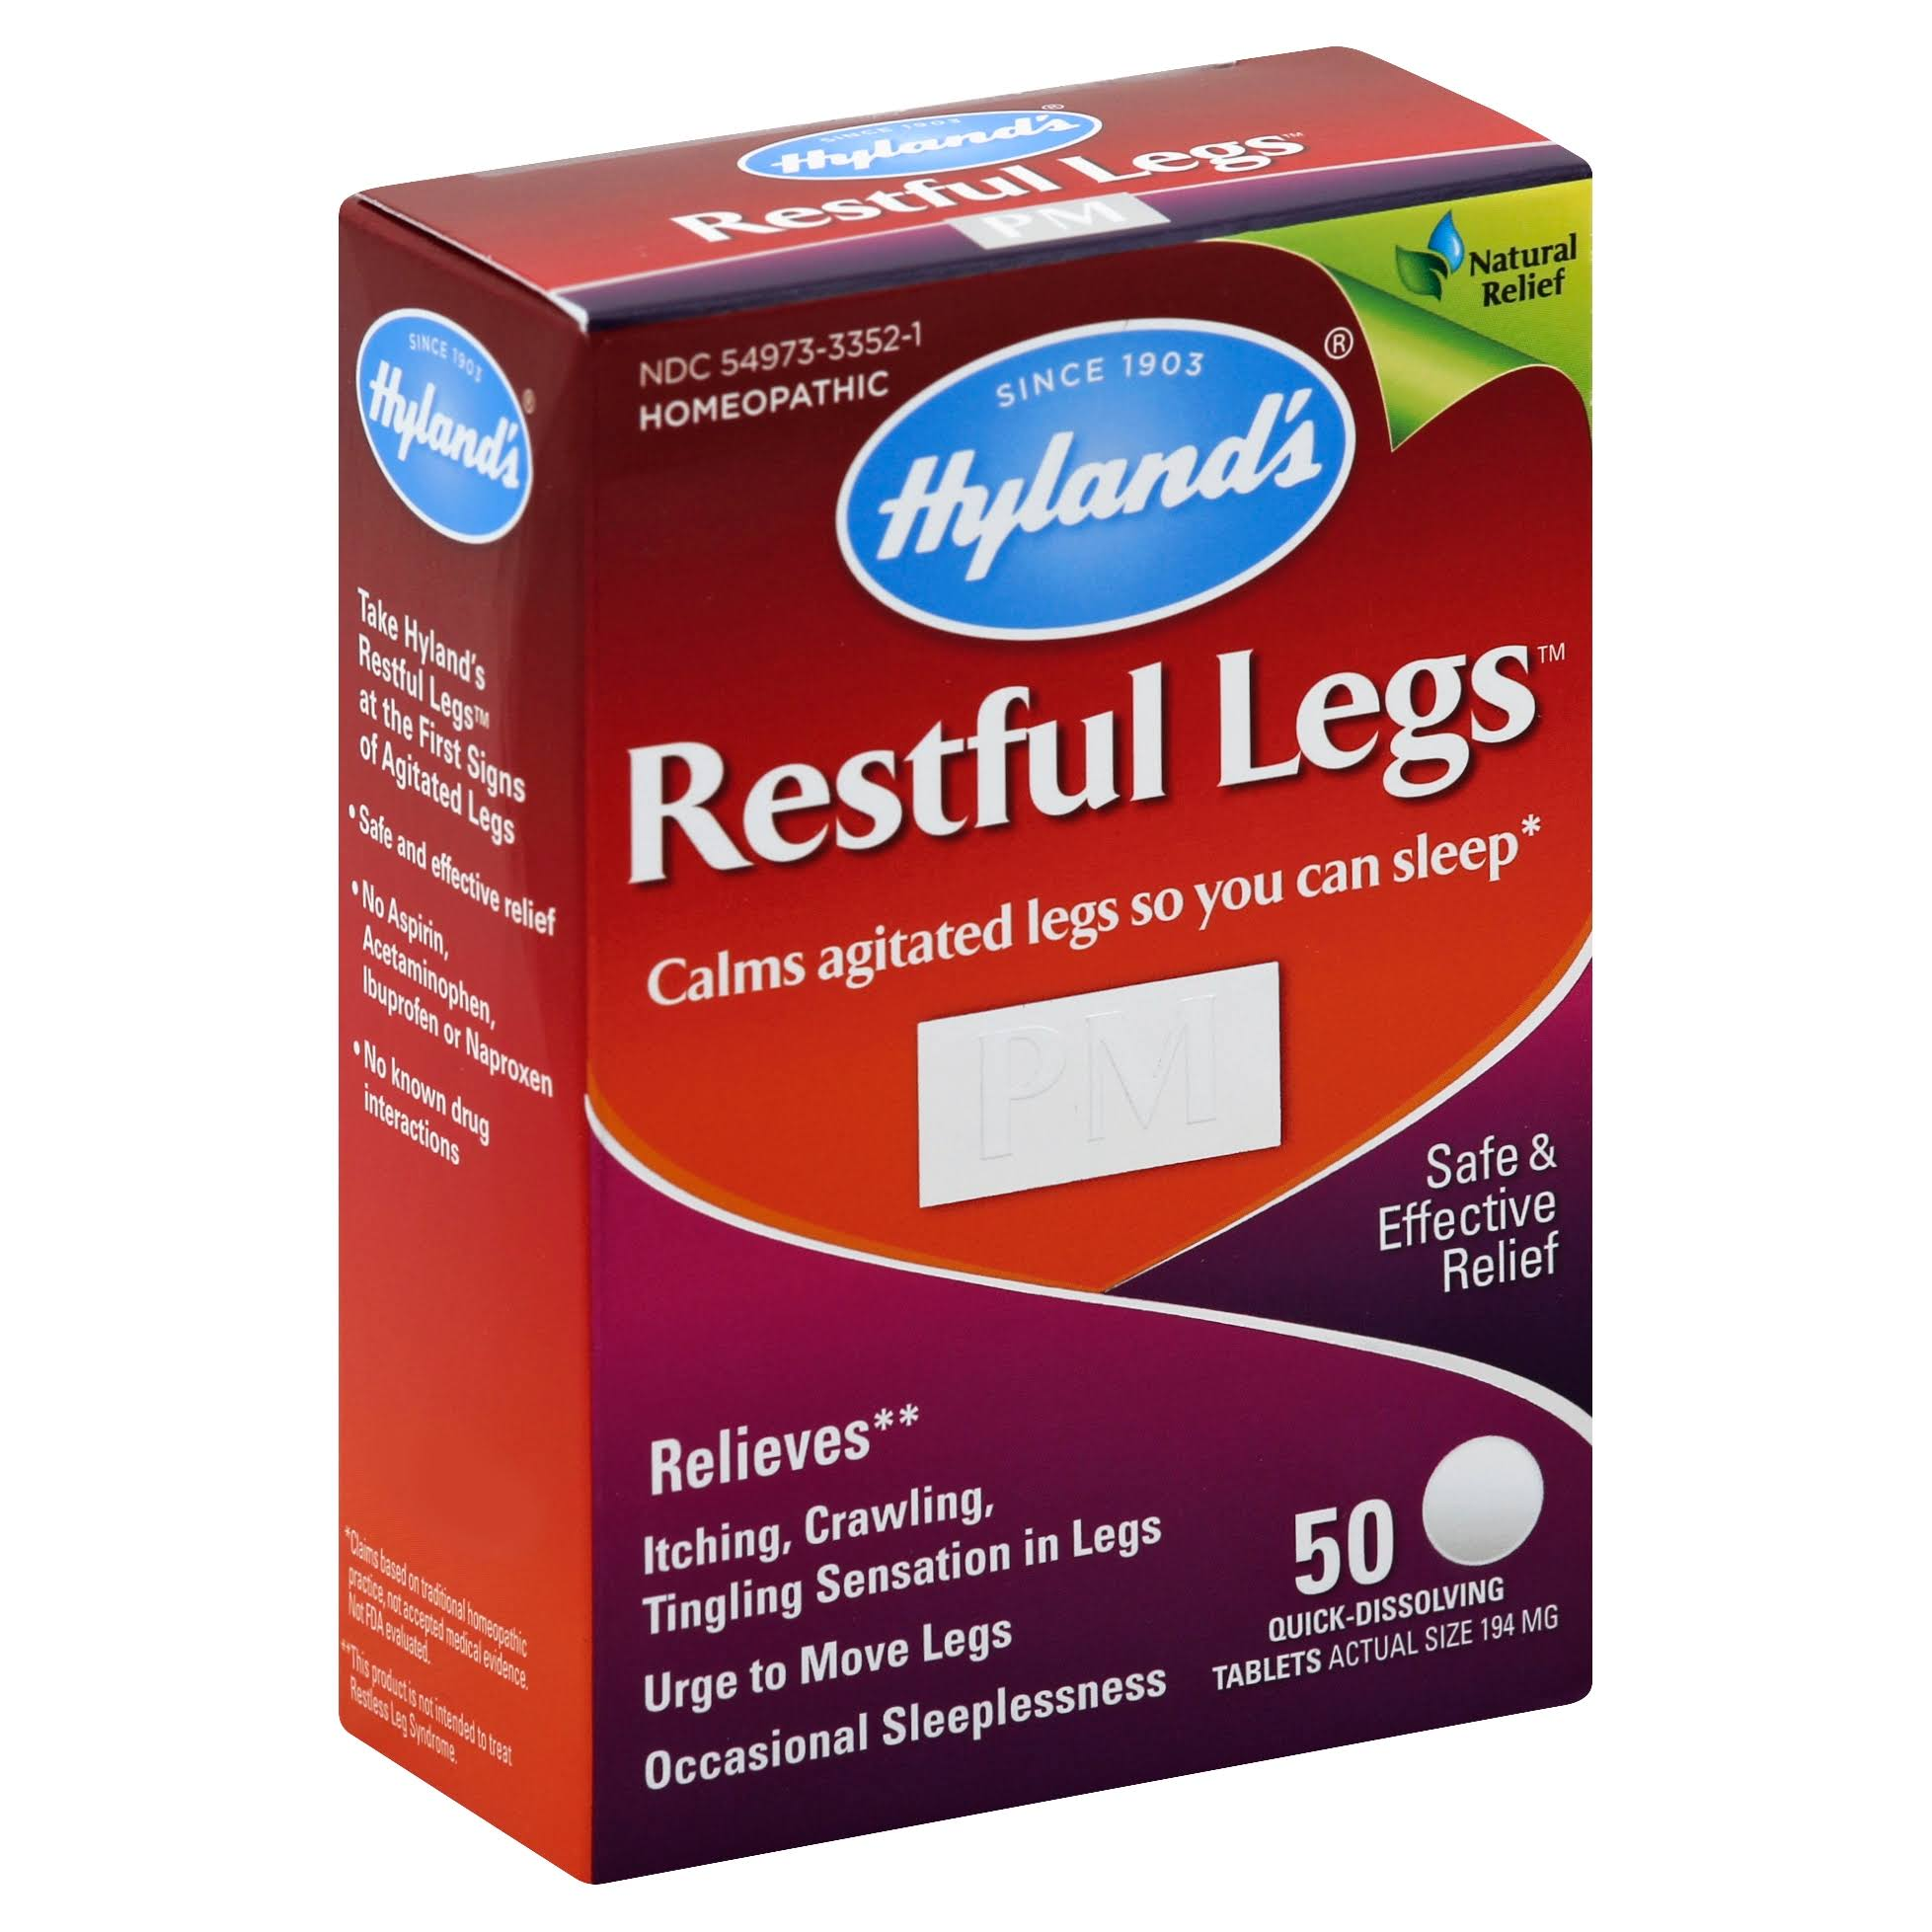 Hylands Restful Legs, PM, 194 mg, Quick Dissolving Tablets - 50 tablets